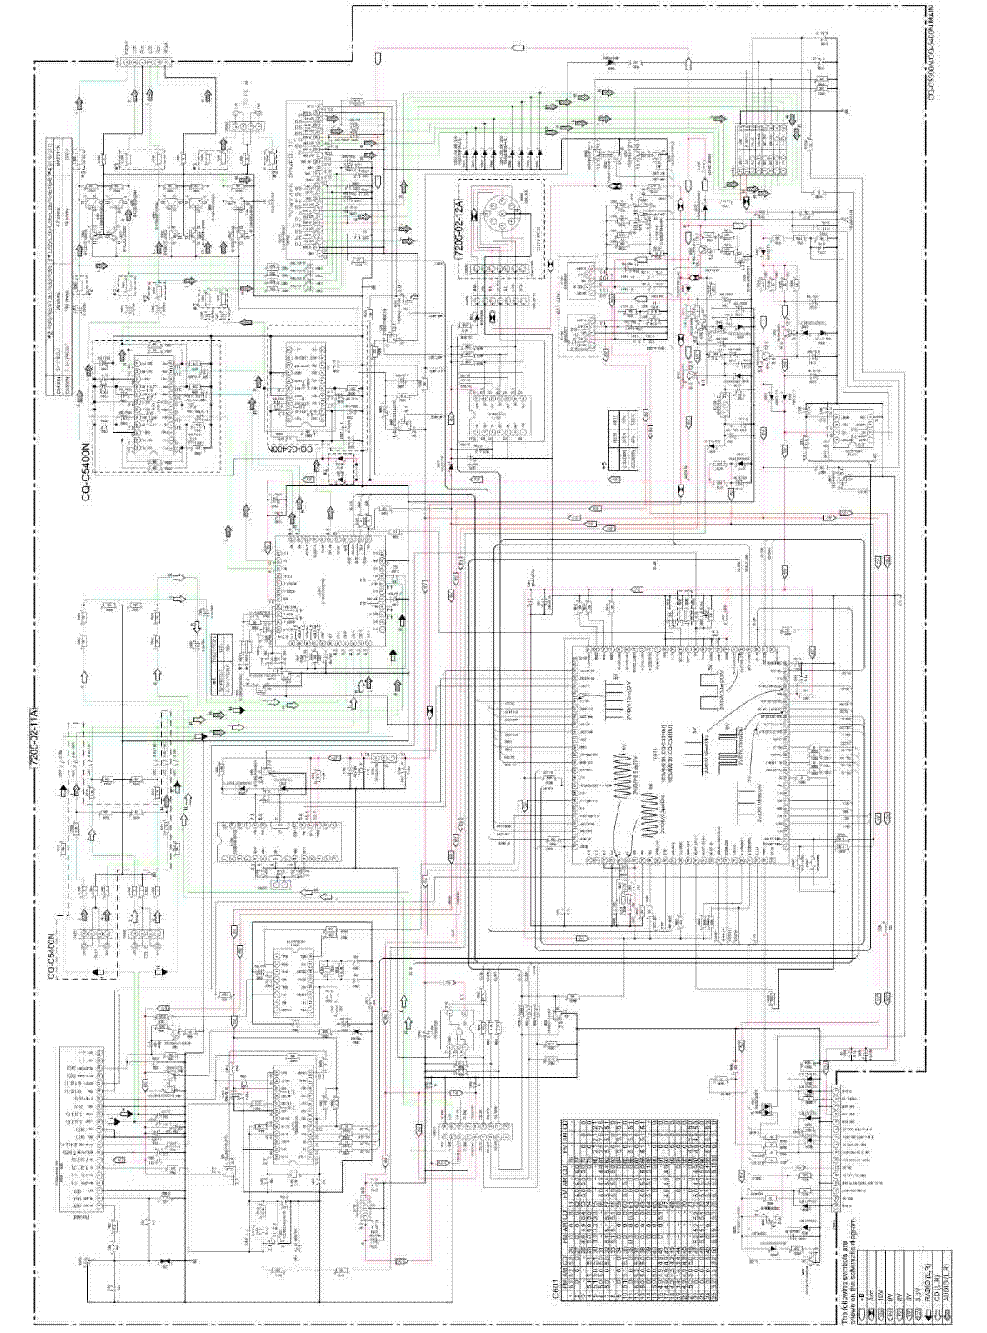 PANASONIC SC-AK-200 Service Manual download, schematics